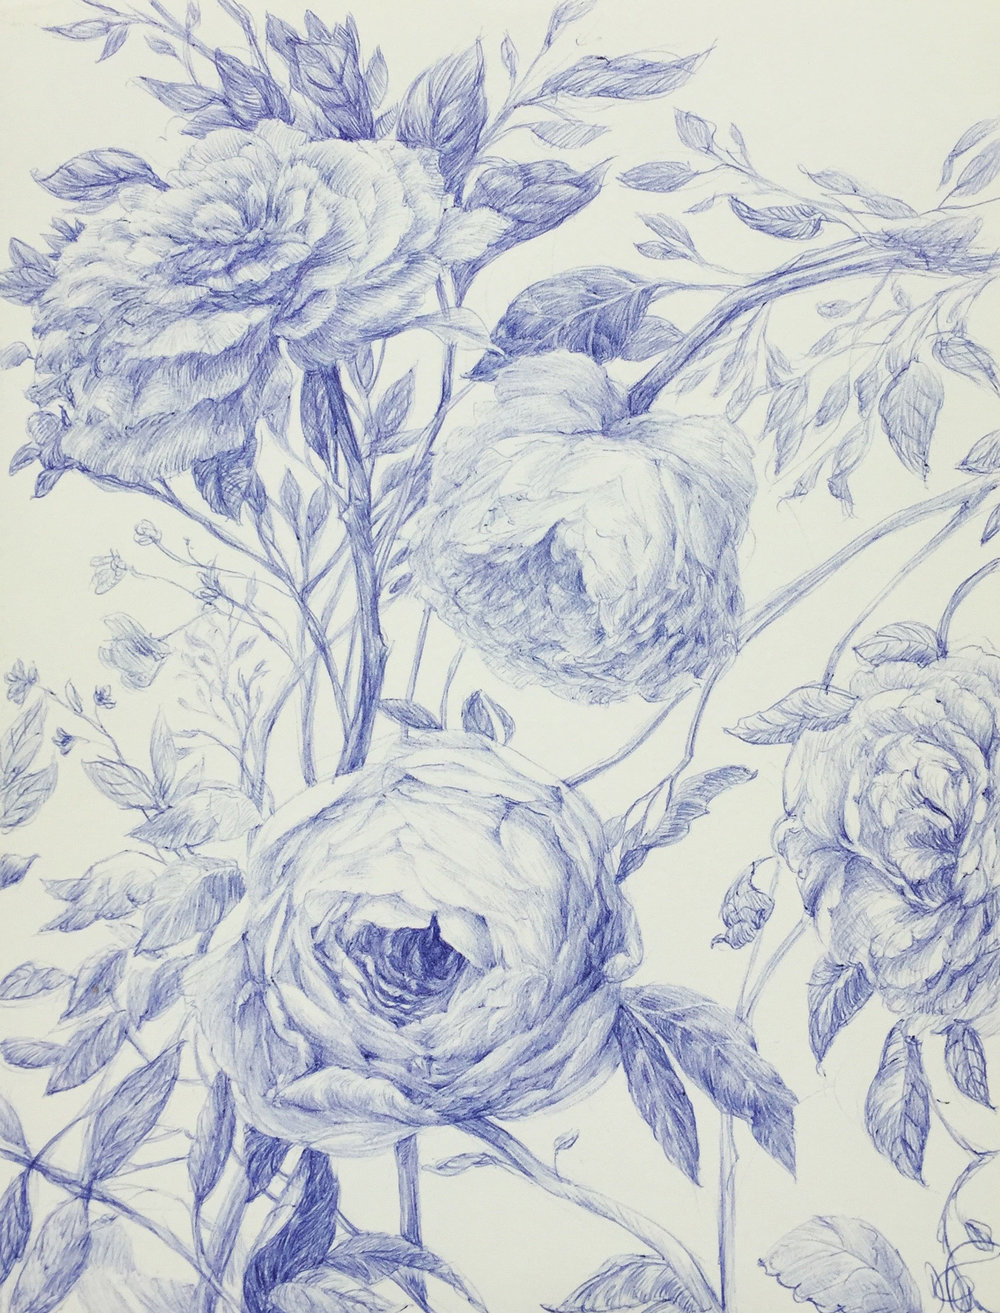 Still Life With Flowers in Blue I